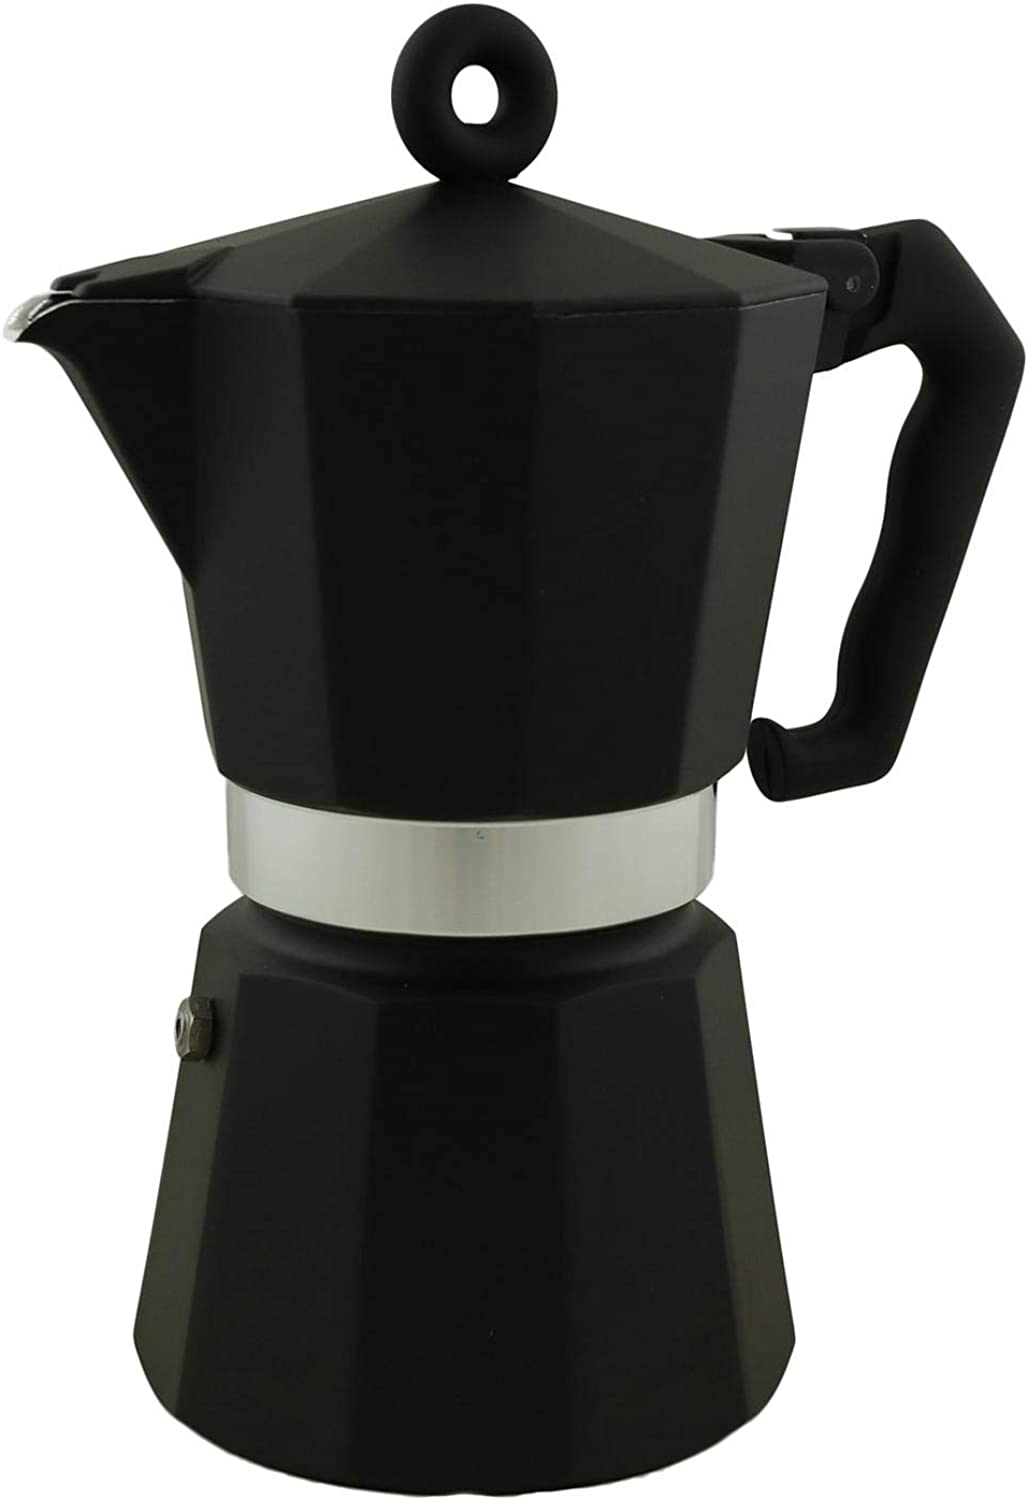 Illy Coffee Moka Pot, 6 CUP, Black